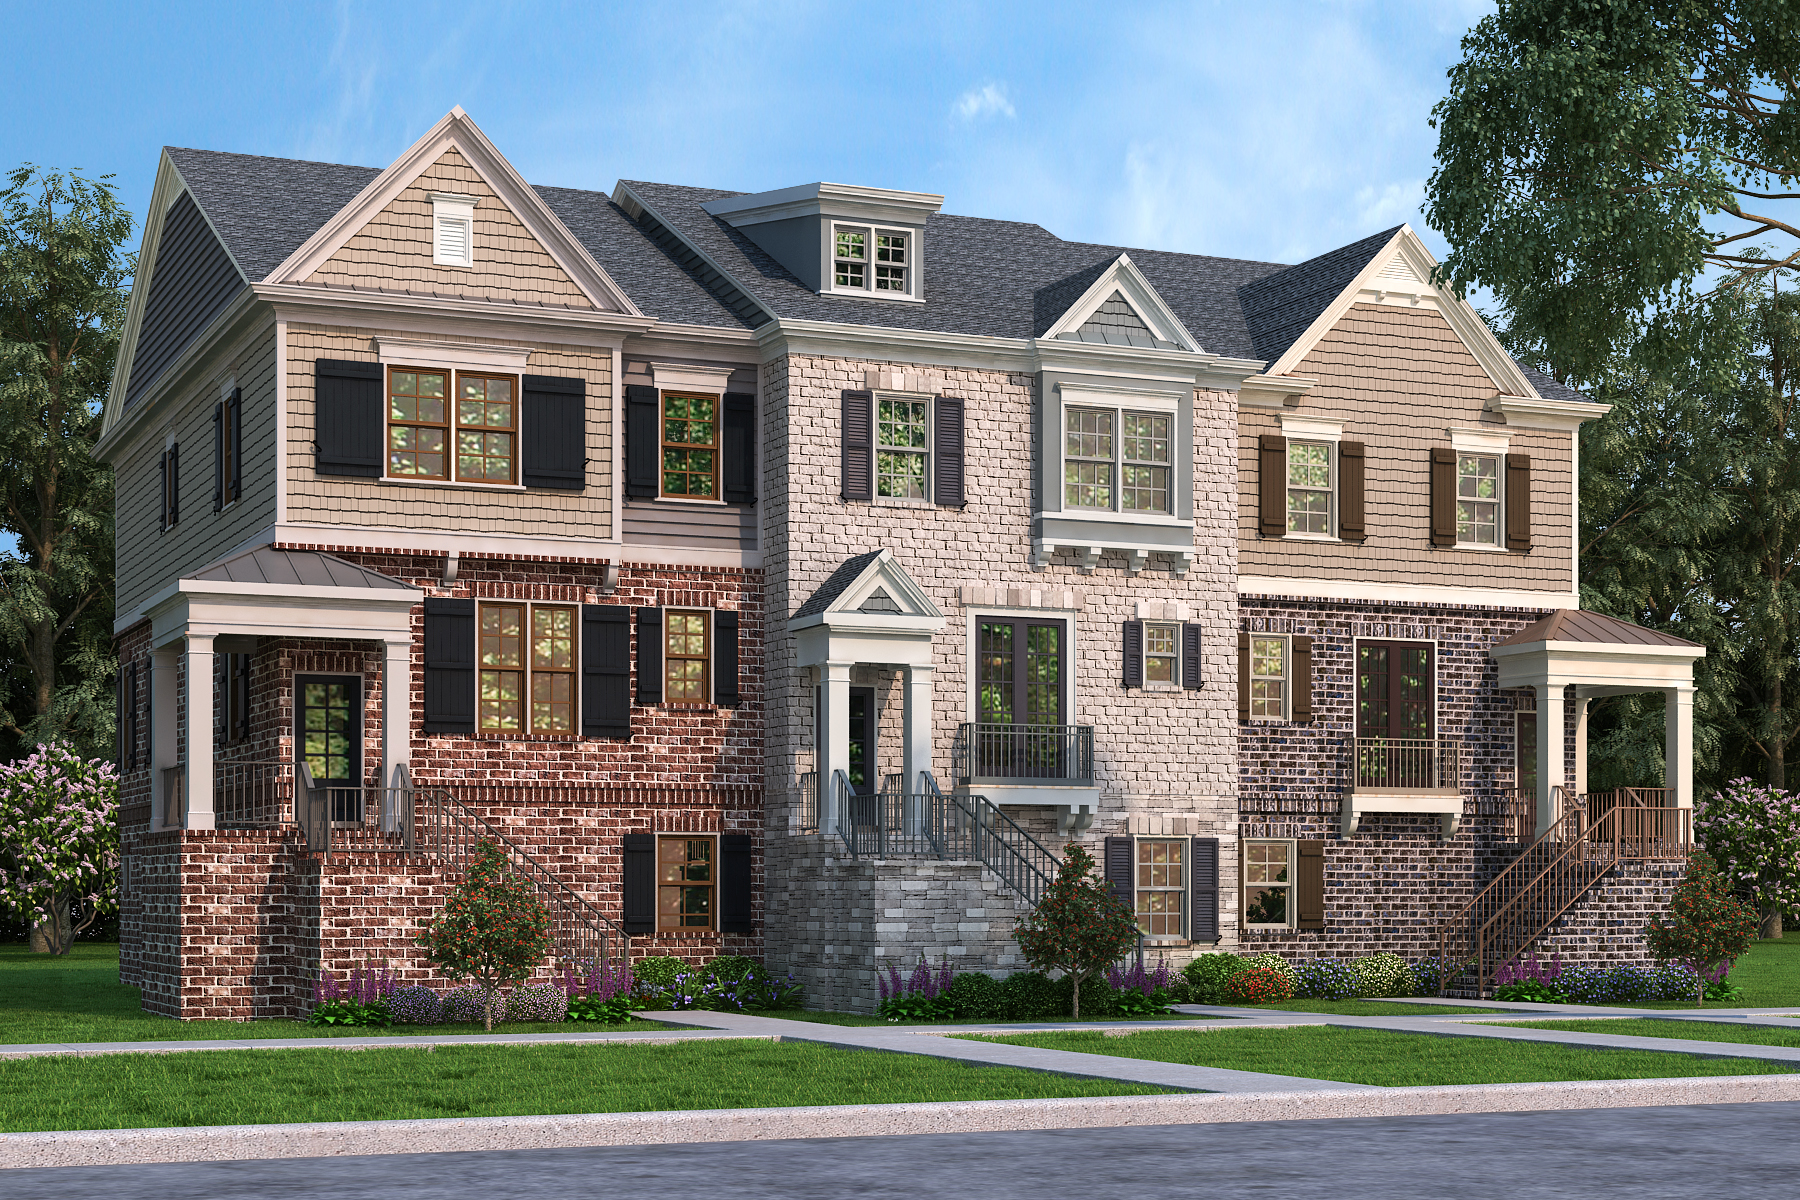 New Homes In Alpharetta Now Selling At Canton Street Commons